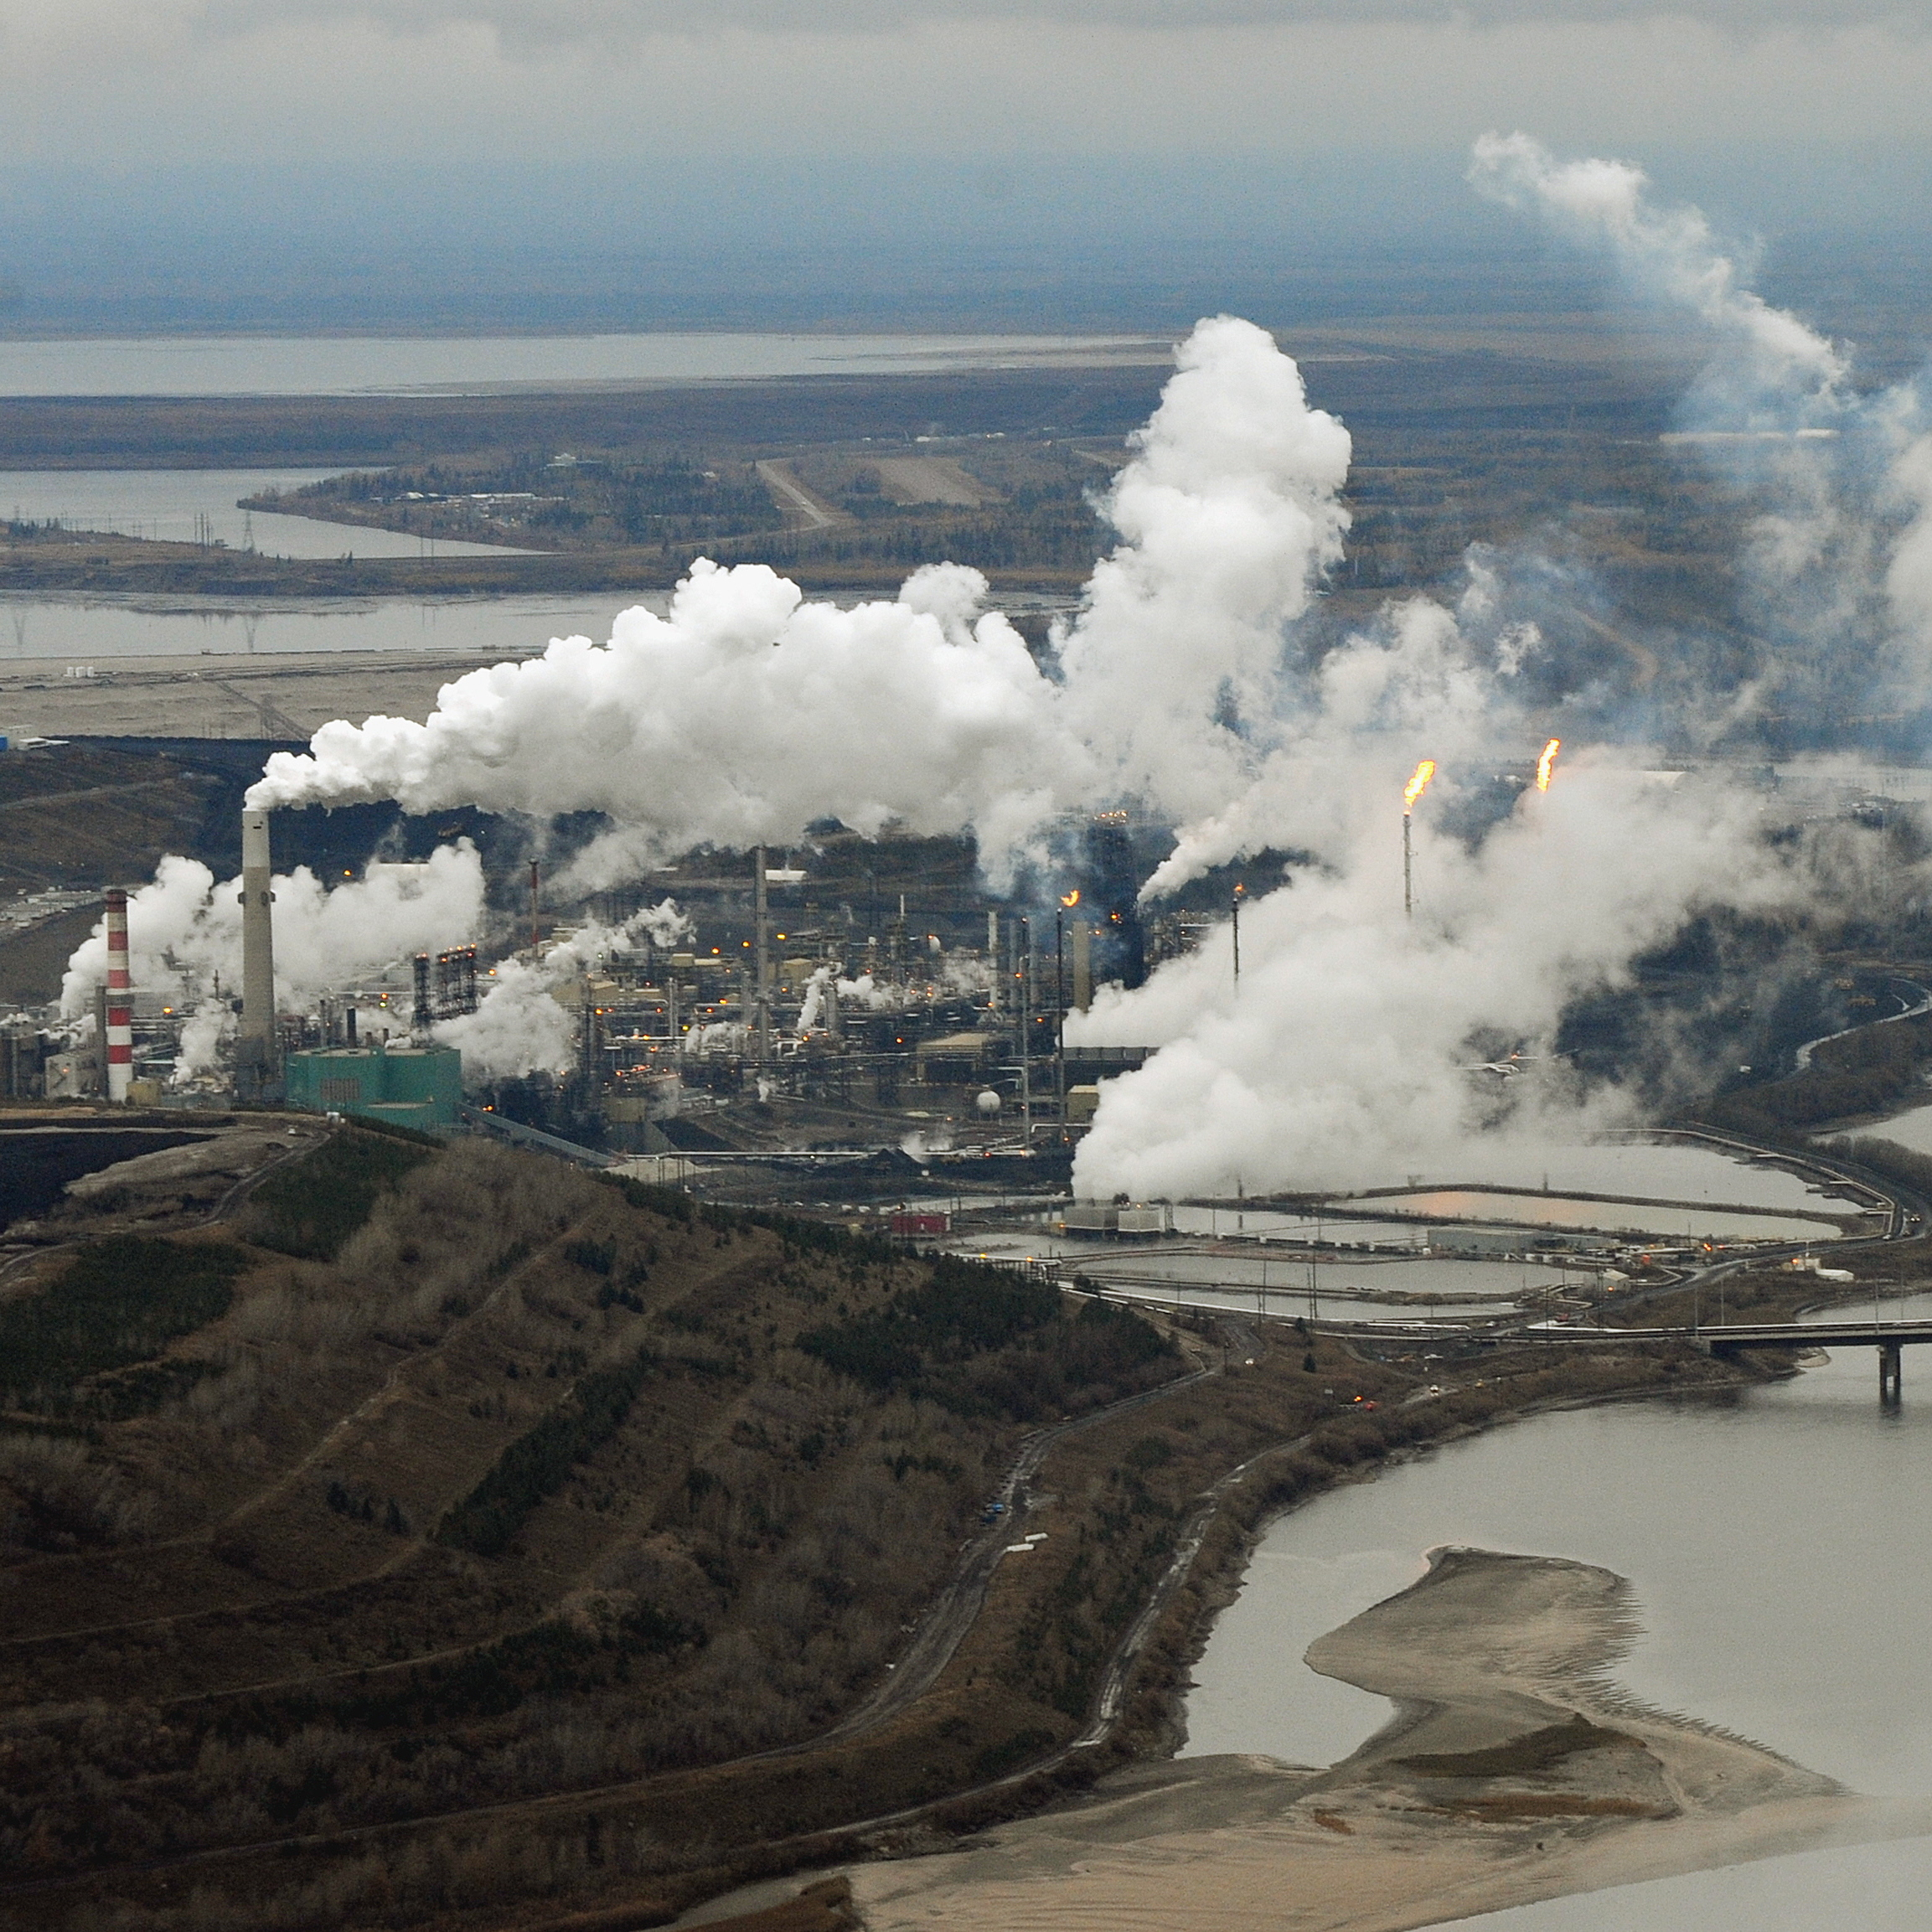 An aerial view of the Suncor oil sands extraction facility on the banks of the Athabasca River in Alberta, Canada, in 2009. Scientists say contaminants found at the bottom of lakes in Alberta are from air pollutants from the facilities responsible for producing and processing tar sands oil.